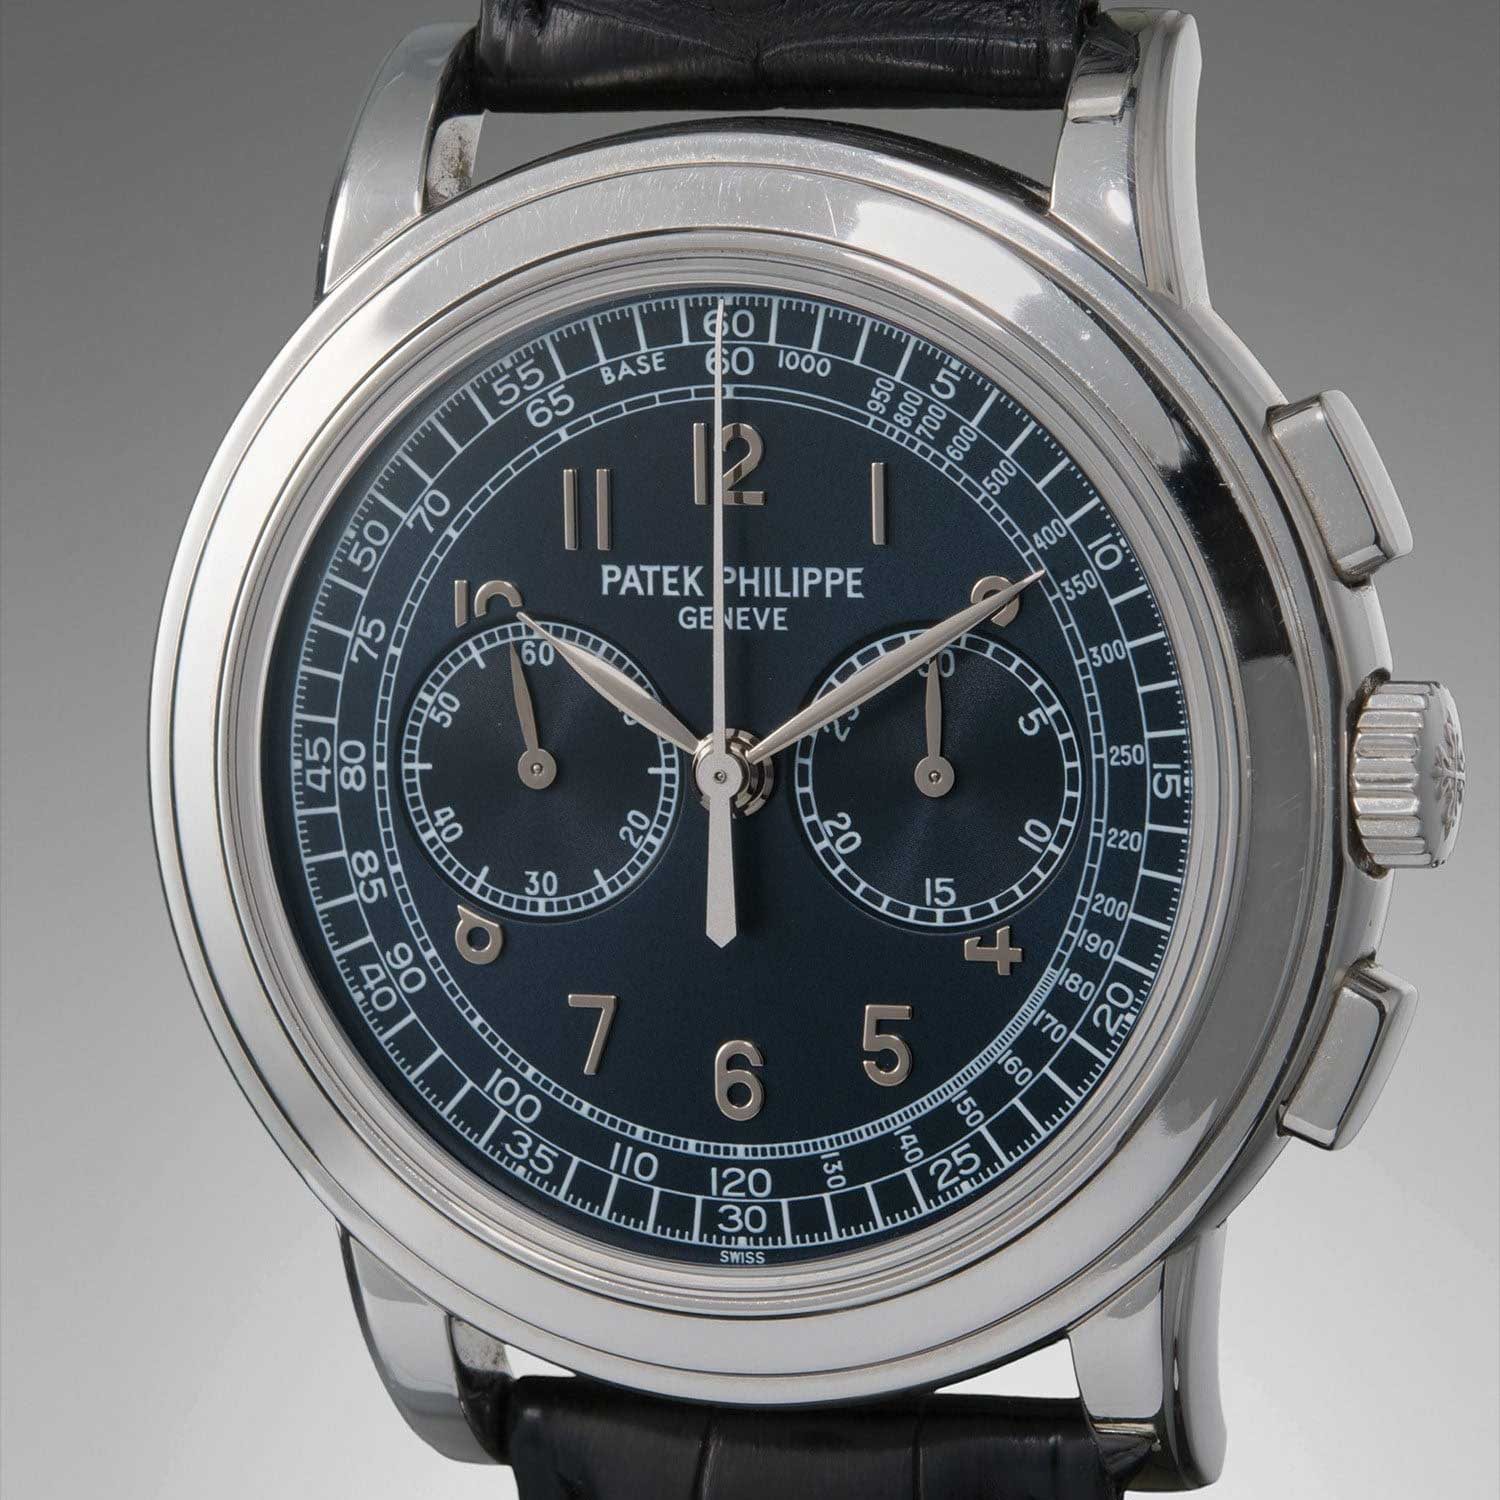 The Patek Philippe ref. 5070, at 42mm the largest wrist watch chronograph to feature the CH 27-70 (Image: Phillips.com)